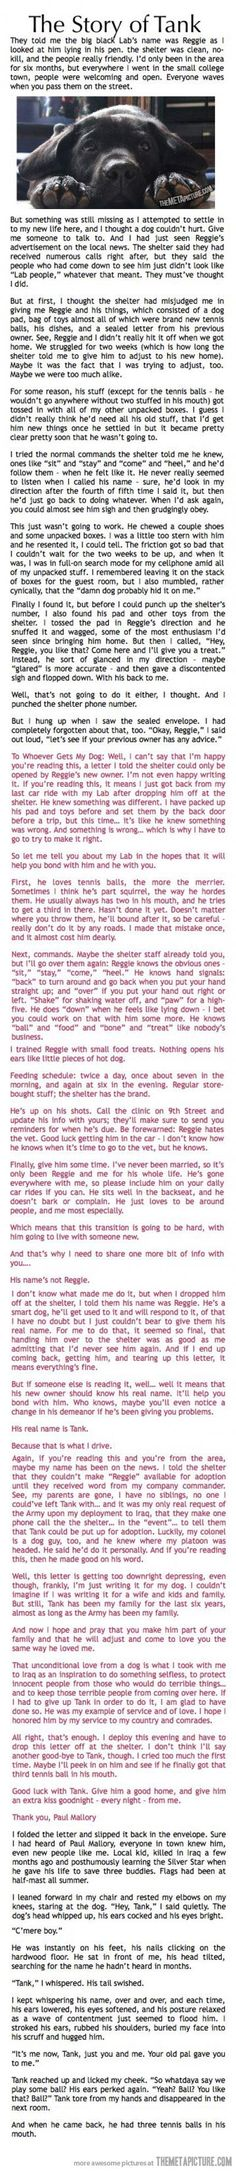 This is definitely a must read... Cried like a baby